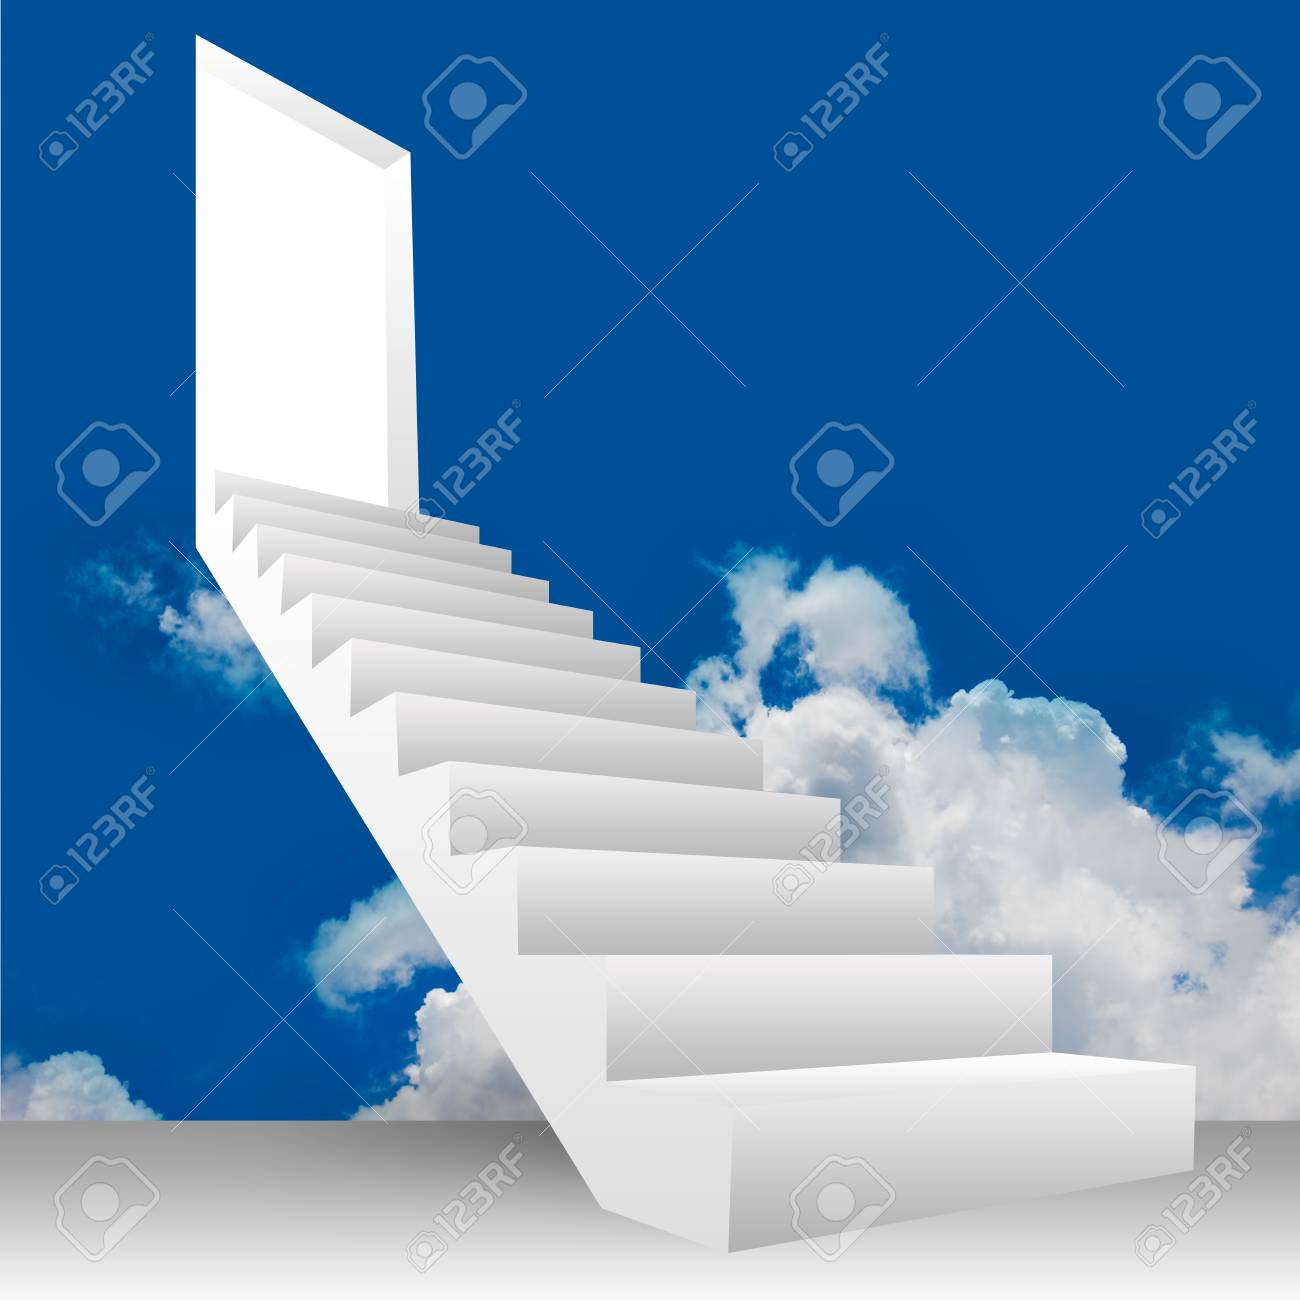 3D Image, Concept of Business for The Step of Career Growth Stock Photo - 14590014